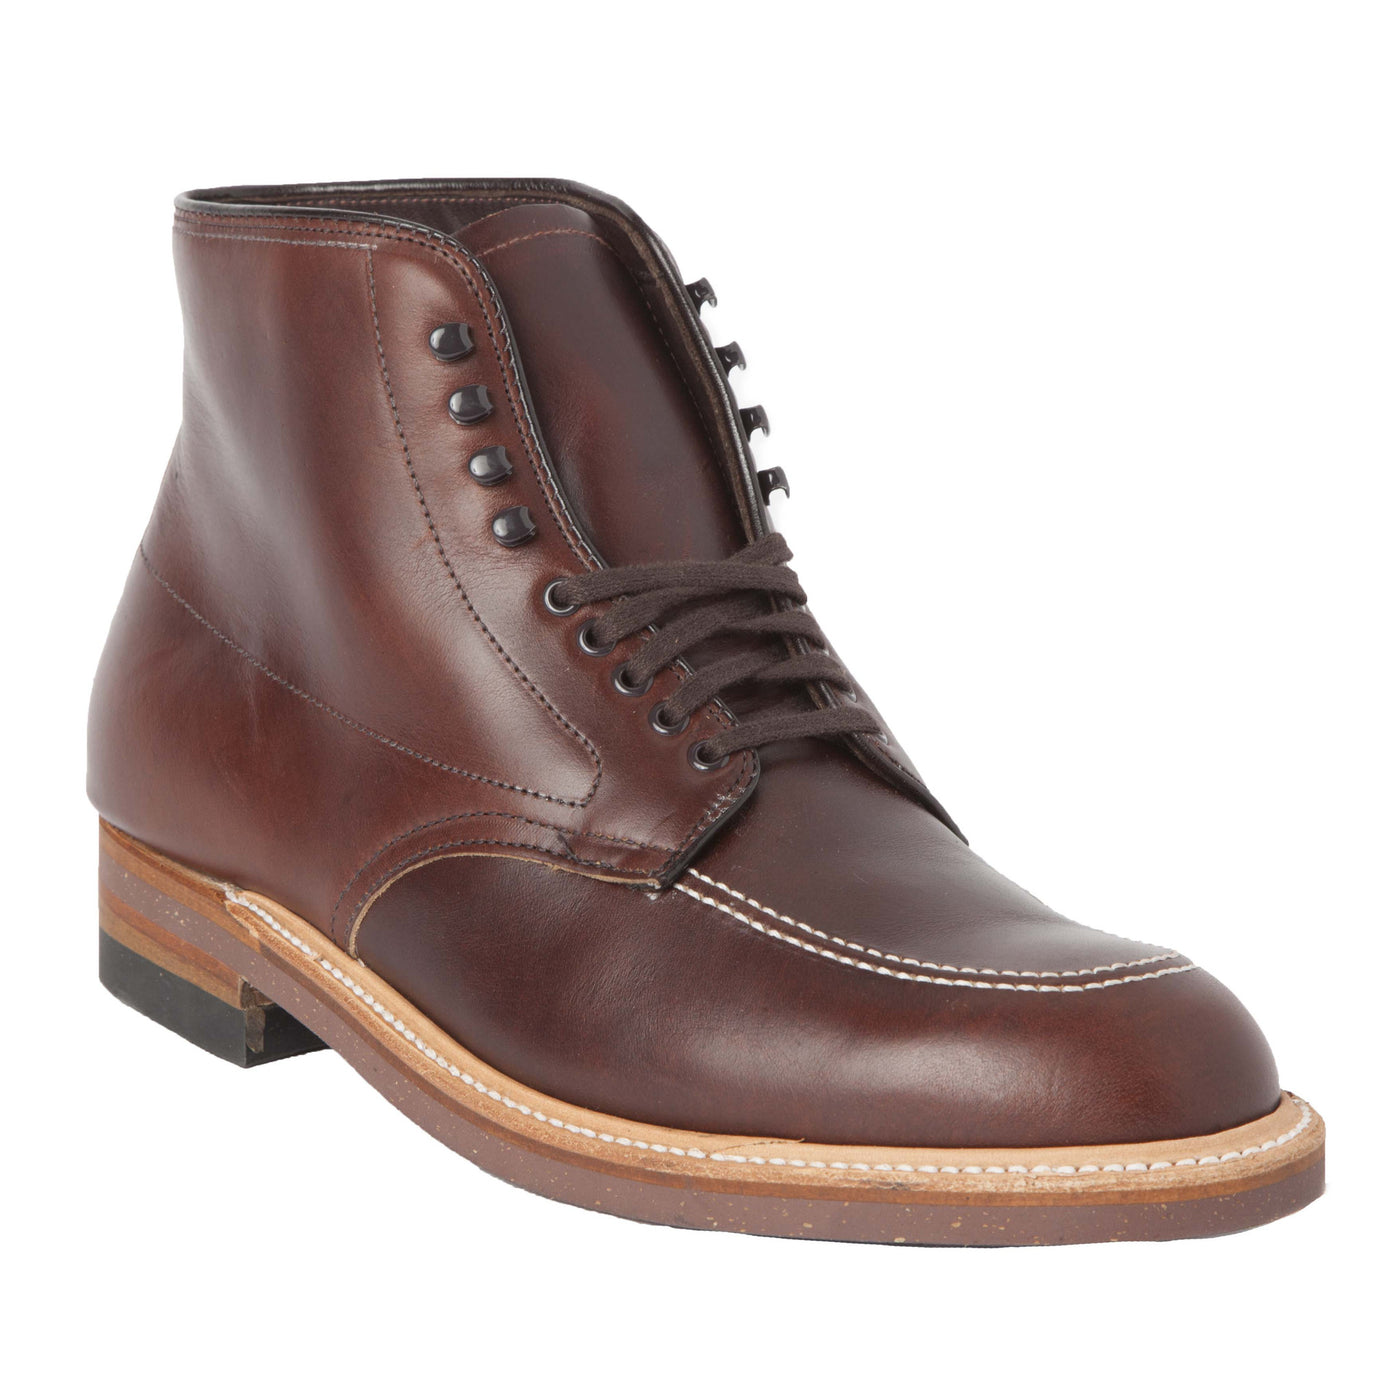 Alden Shoes | 403 Work Boot - GARYS